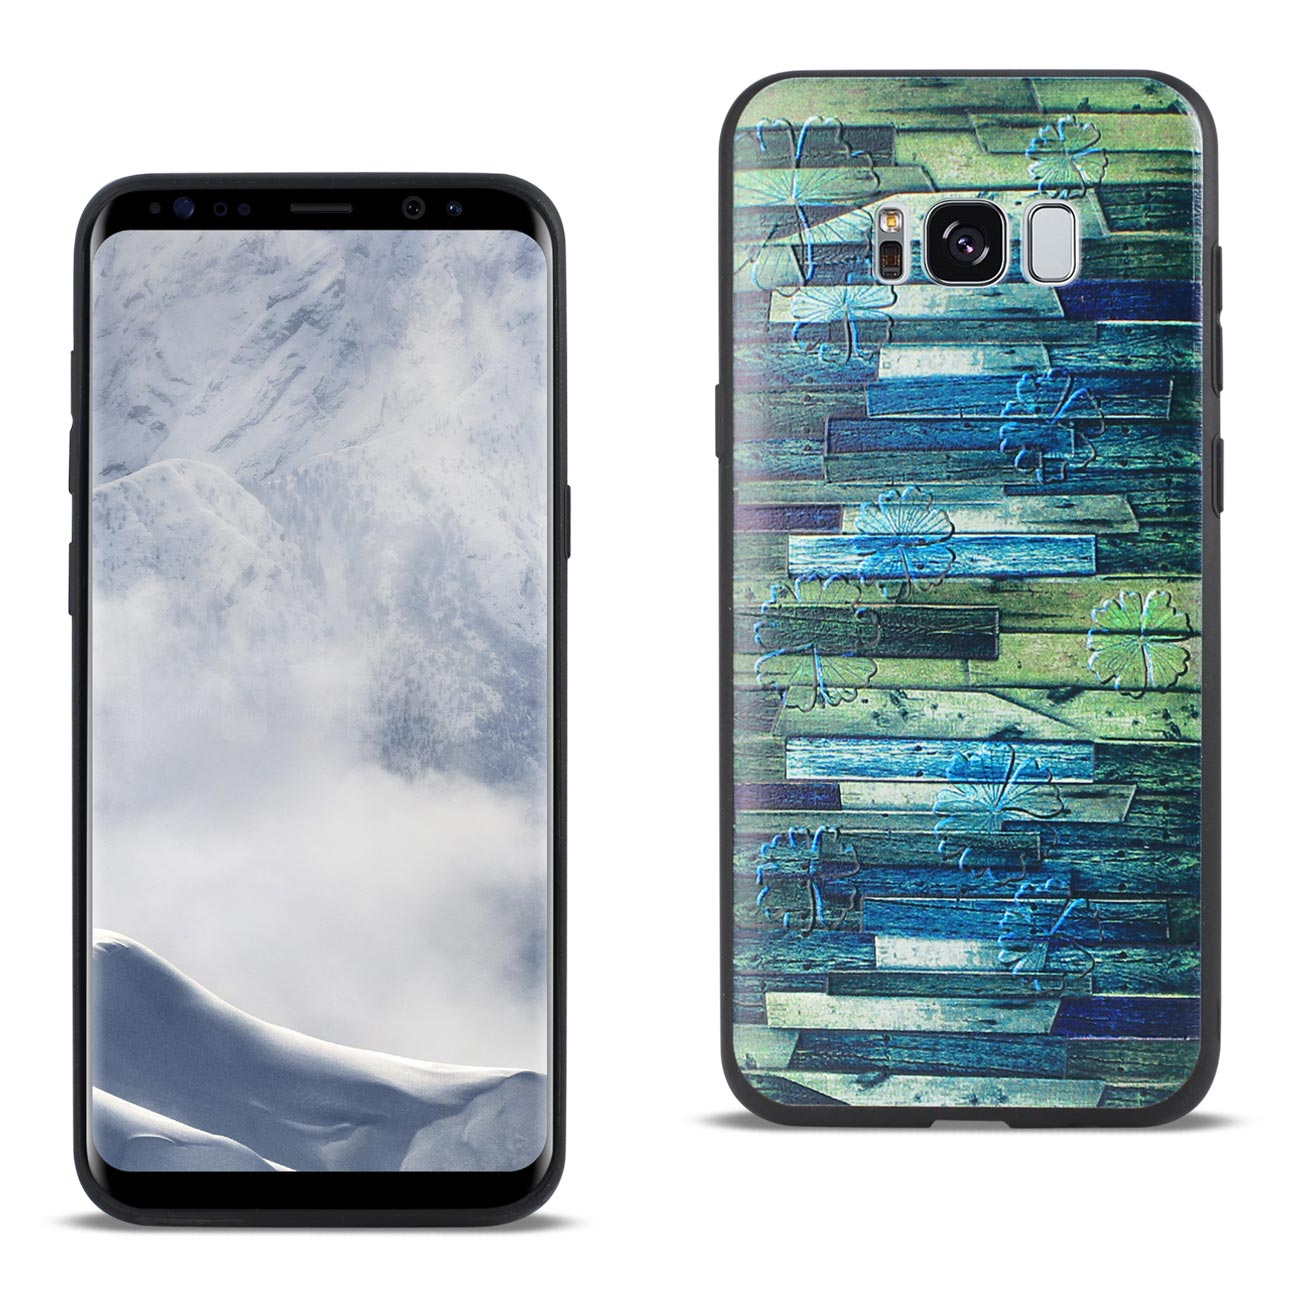 REIKO SAMSUNG GALAXY S8 EDGE EMBOSSED WOOD PATTERN DESIGN TPU CASE WITH MULTI-LETTER